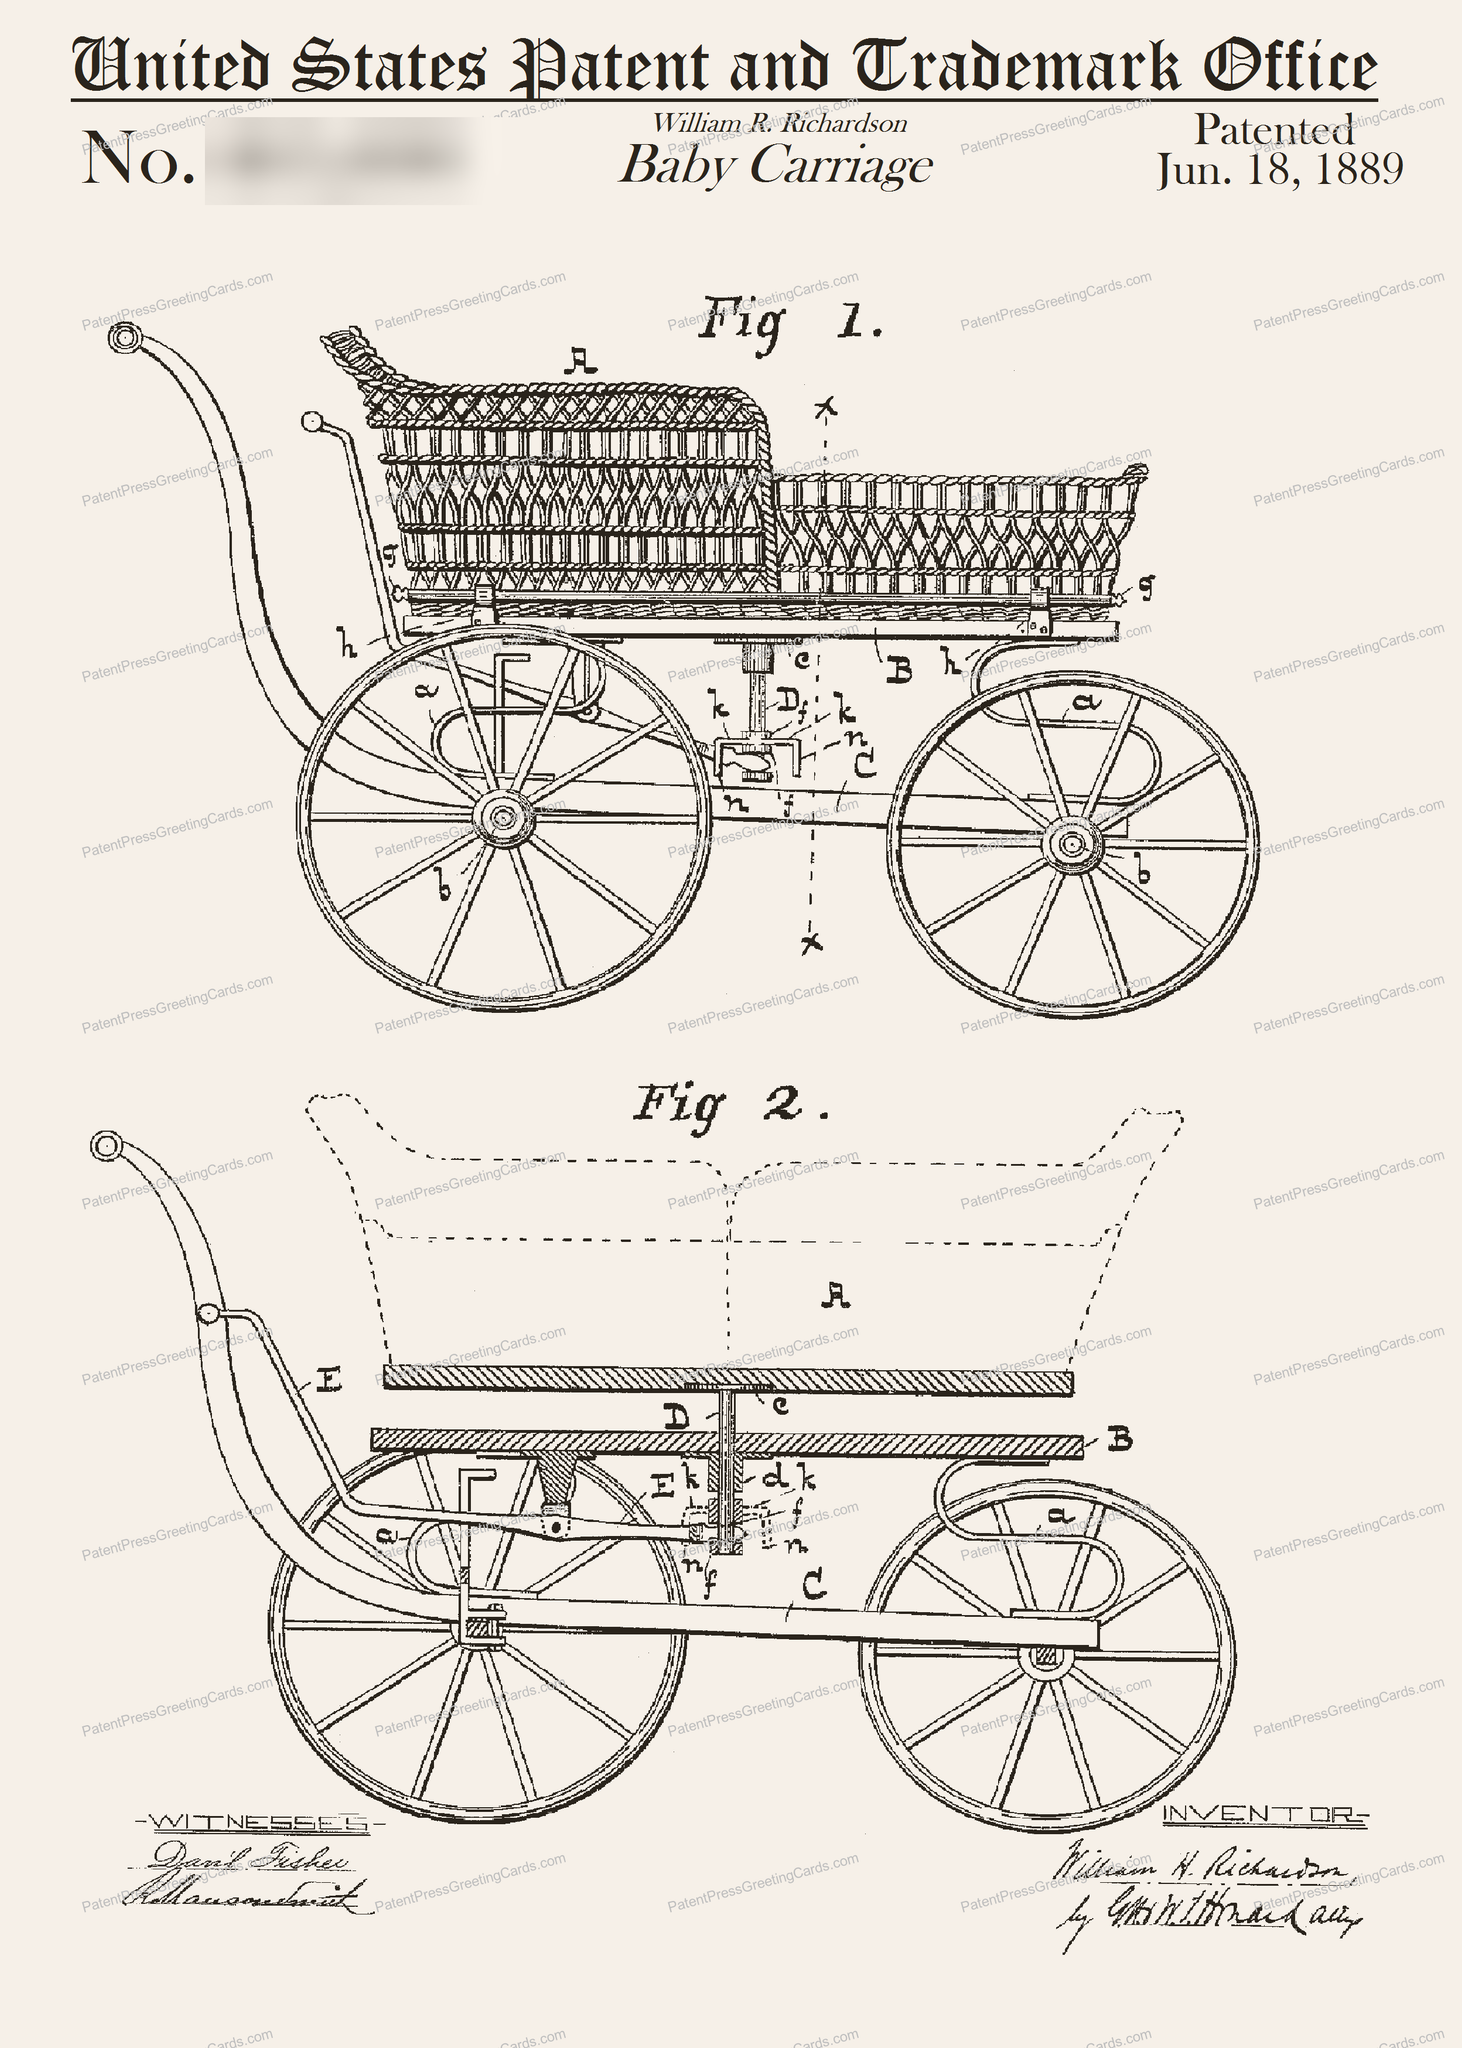 CARD-006: Baby Carriage - Patent Press™